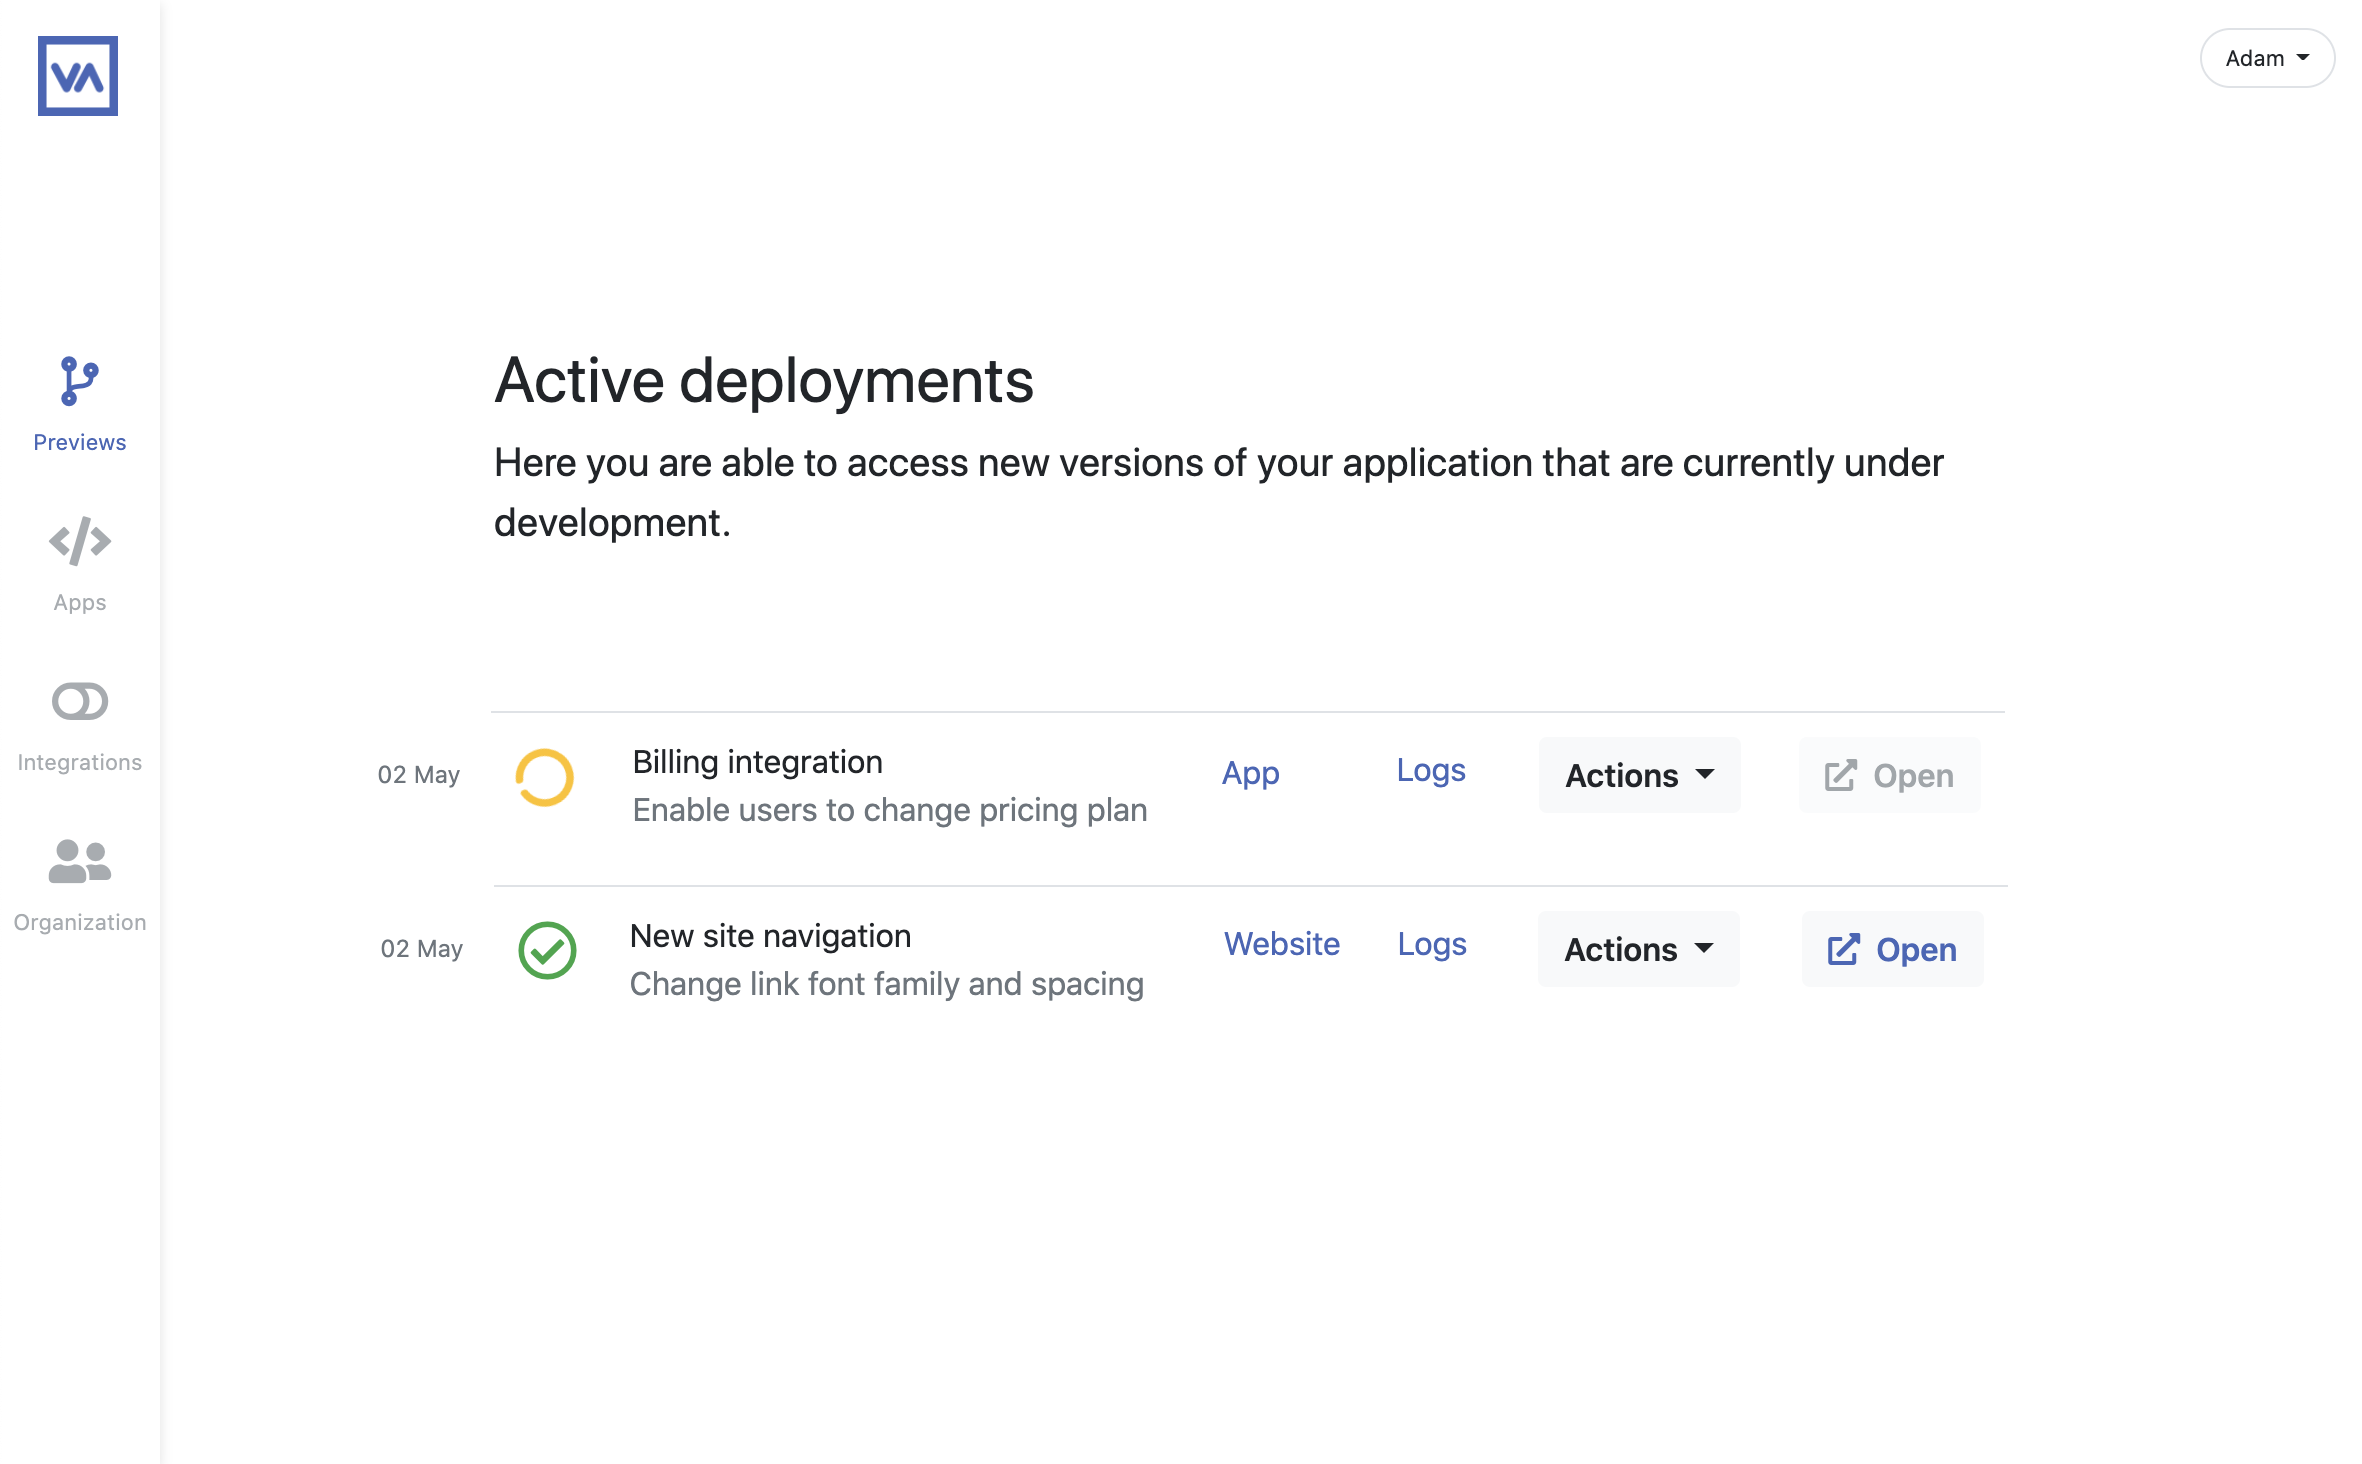 app screenshot of active deploymente